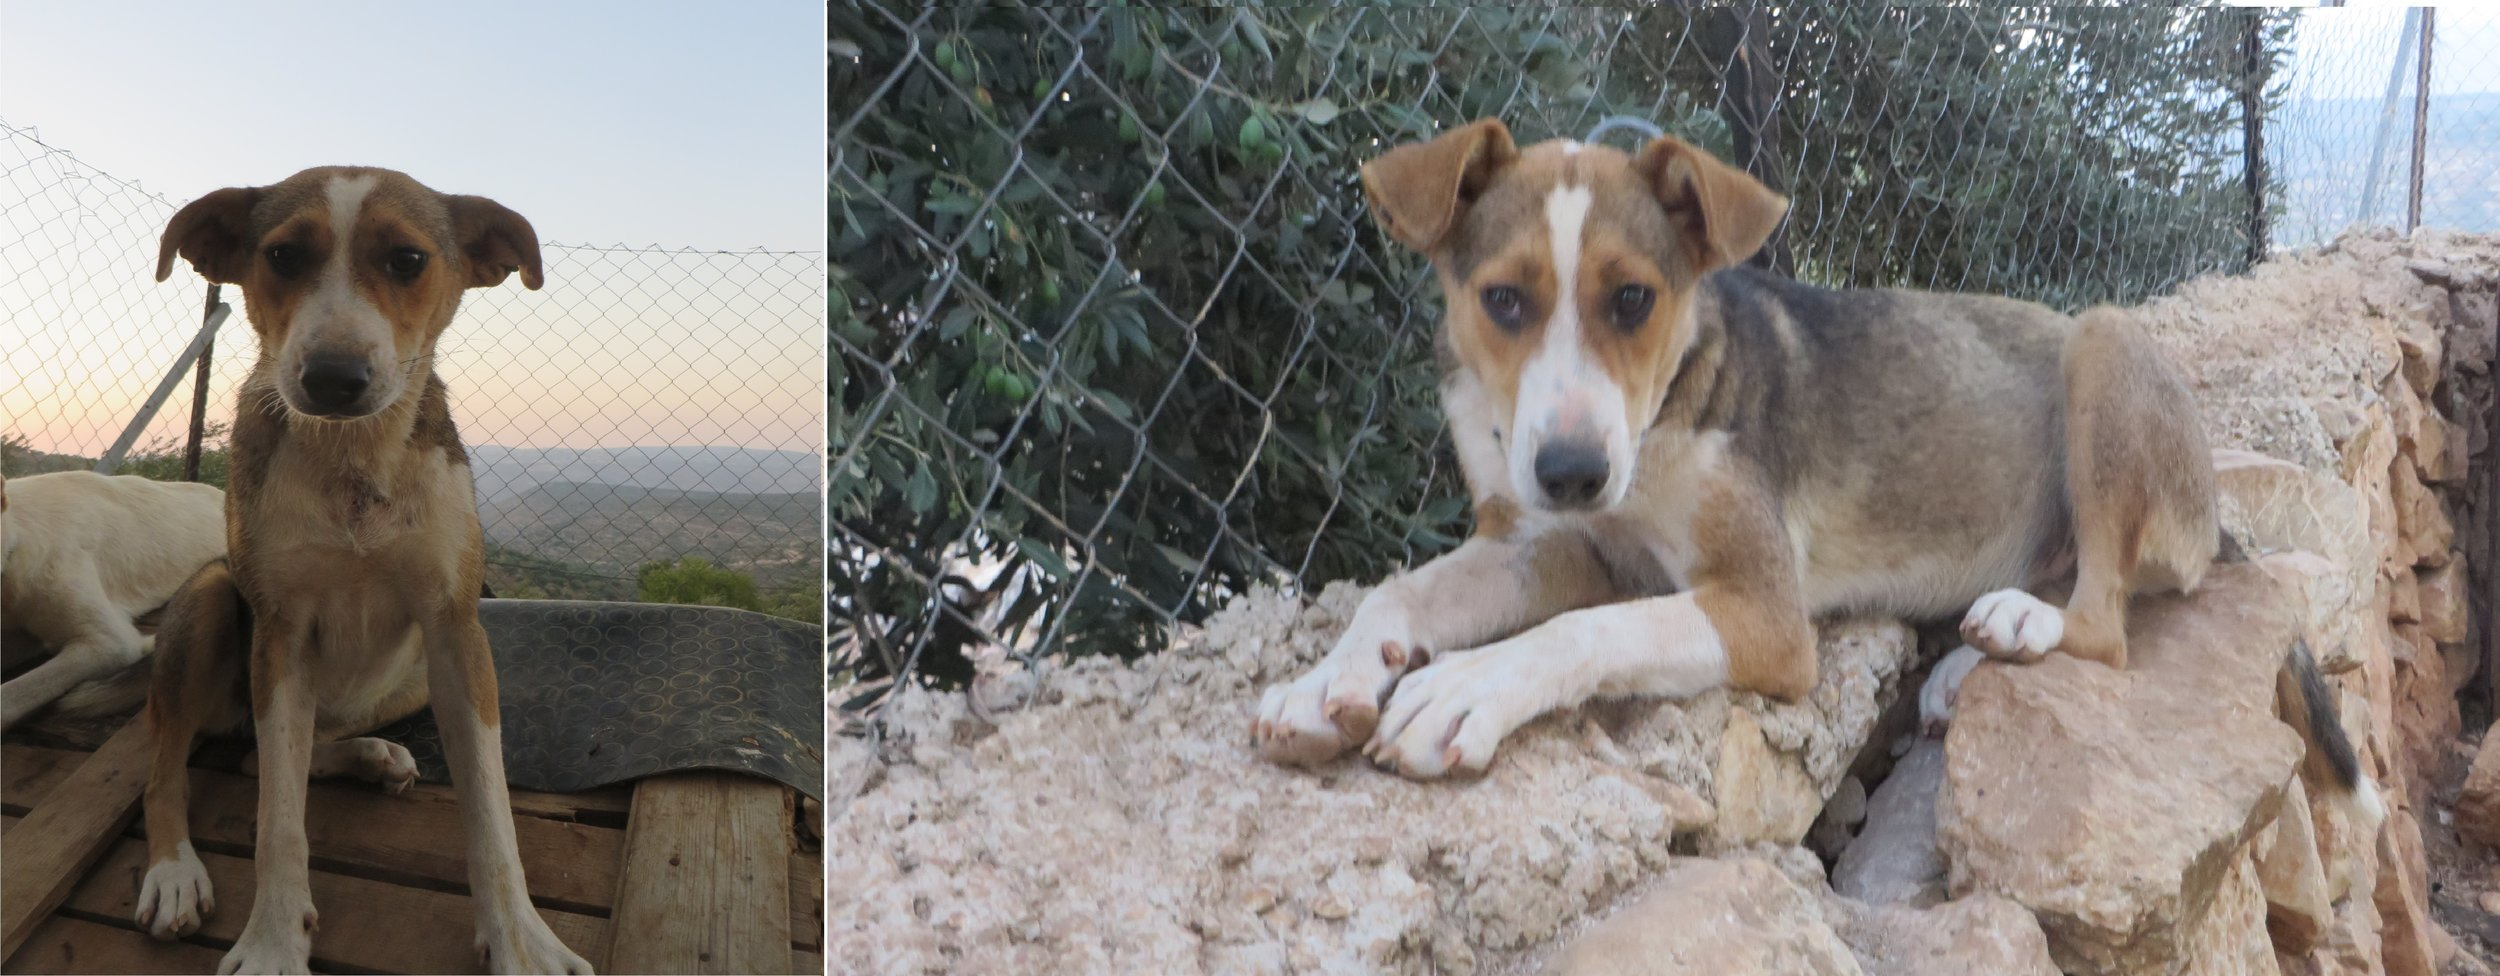 """Awiyeh (""""Strong One"""") - Usama rescued this abandoned puppy from Nablus. Although she is very playful and friendly, she is unexpectedly strong and doesn't let other dogs push her around. She is besties with Badu and they spend all day playing with each other. It's always fun to open her pen because she can't wait to attack whoever visits and shower them with kisses and hugs."""